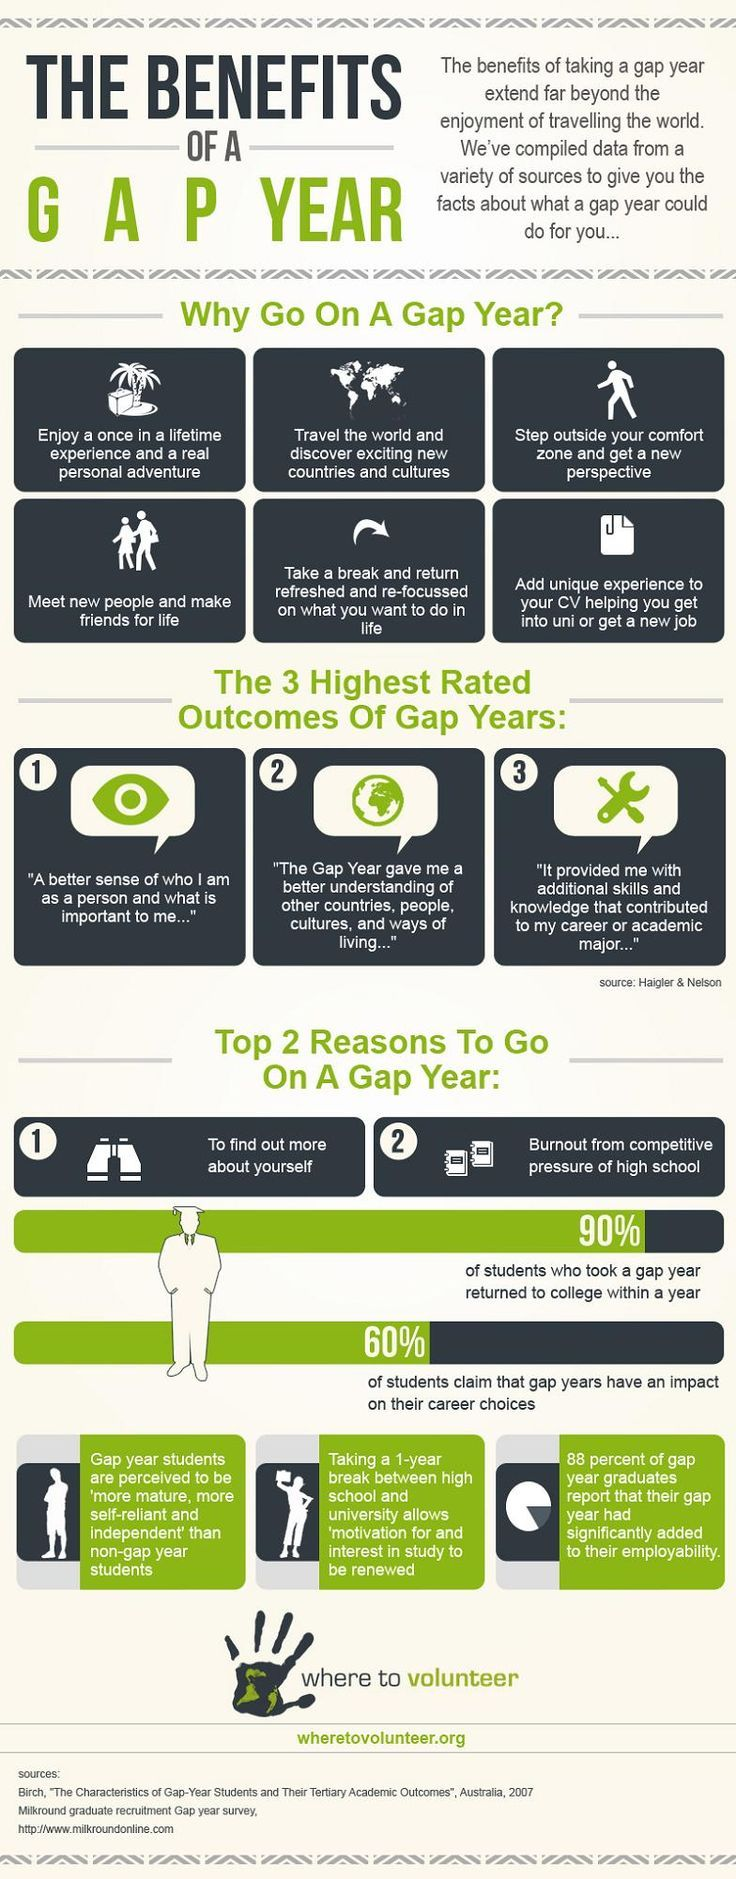 The Benefits Of A Gap Year #Infographic #Travel: